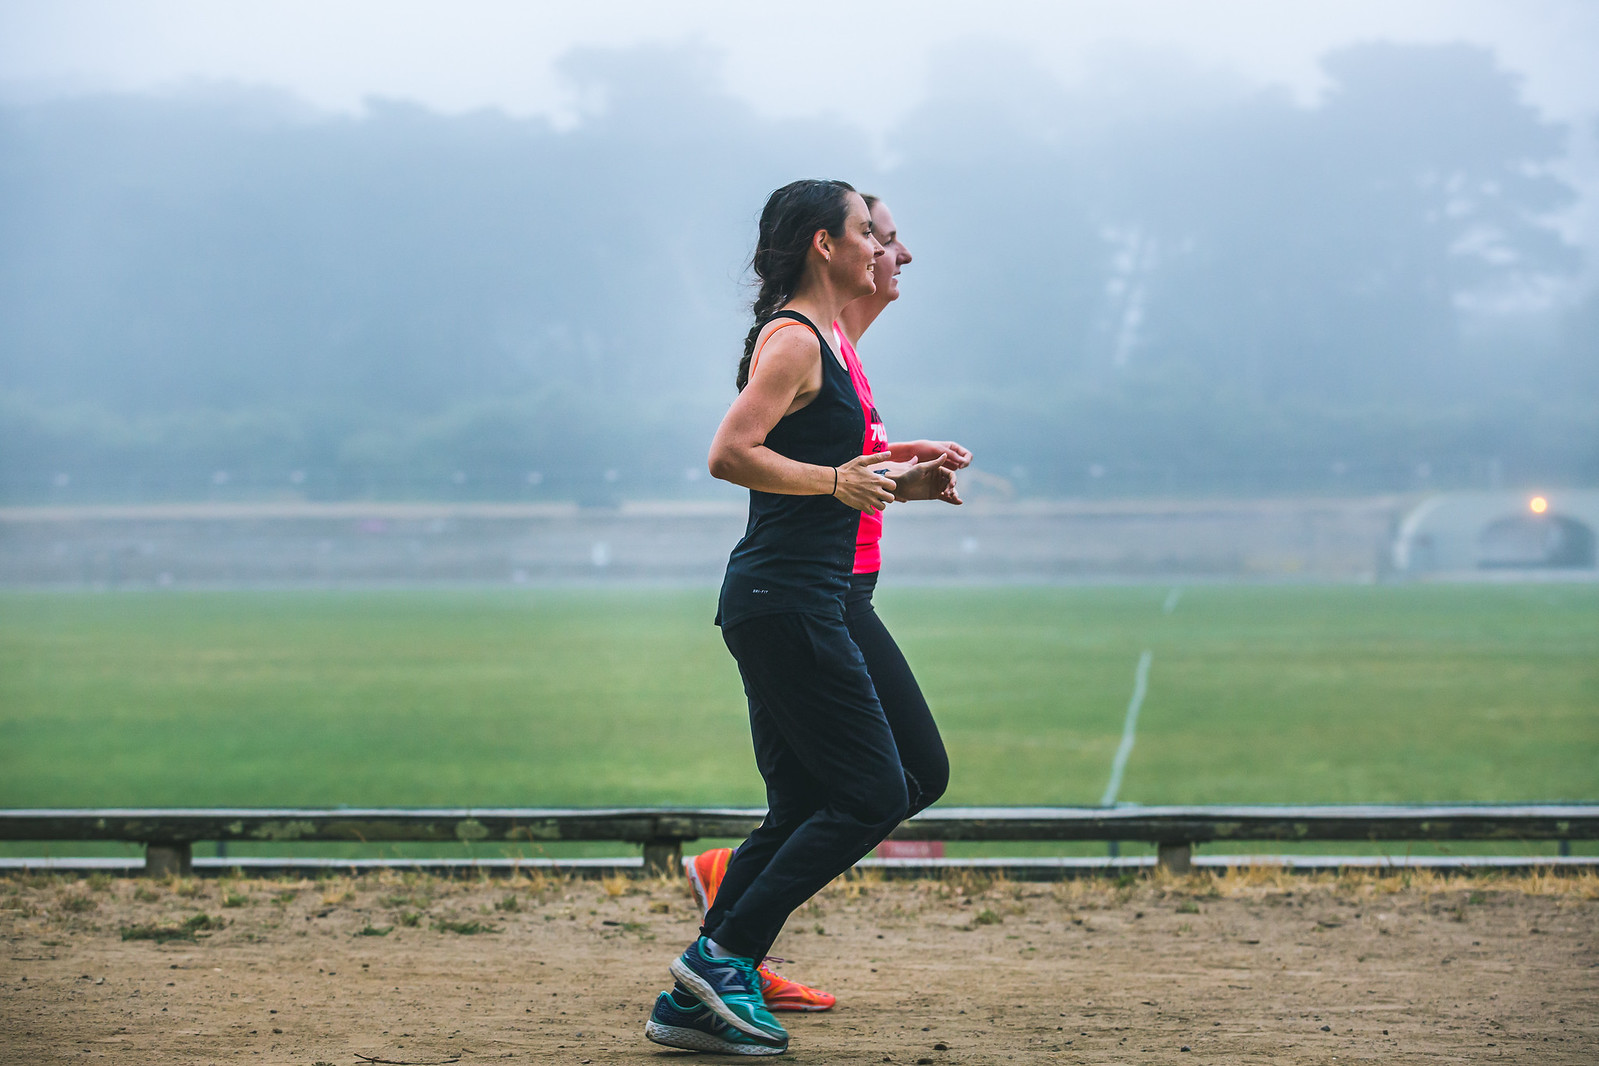 train for your fastest mile in two weeks